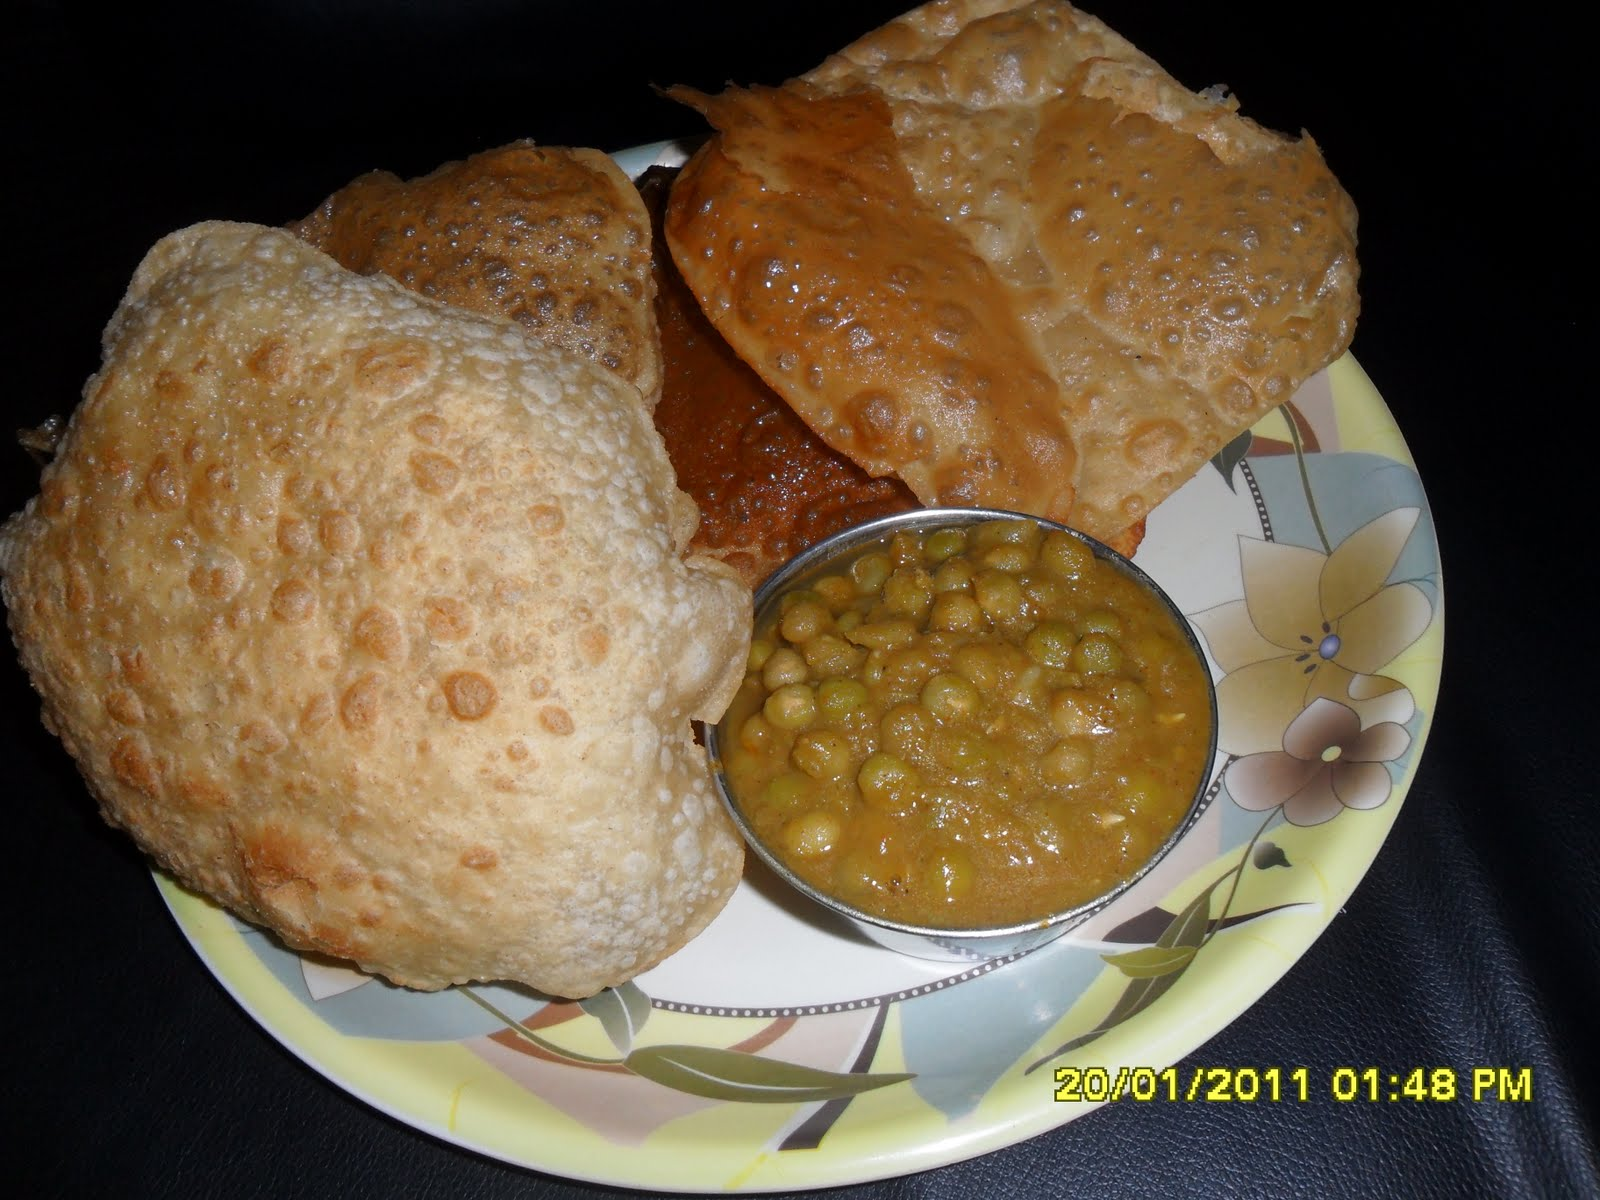 images of indian food items - photo #17